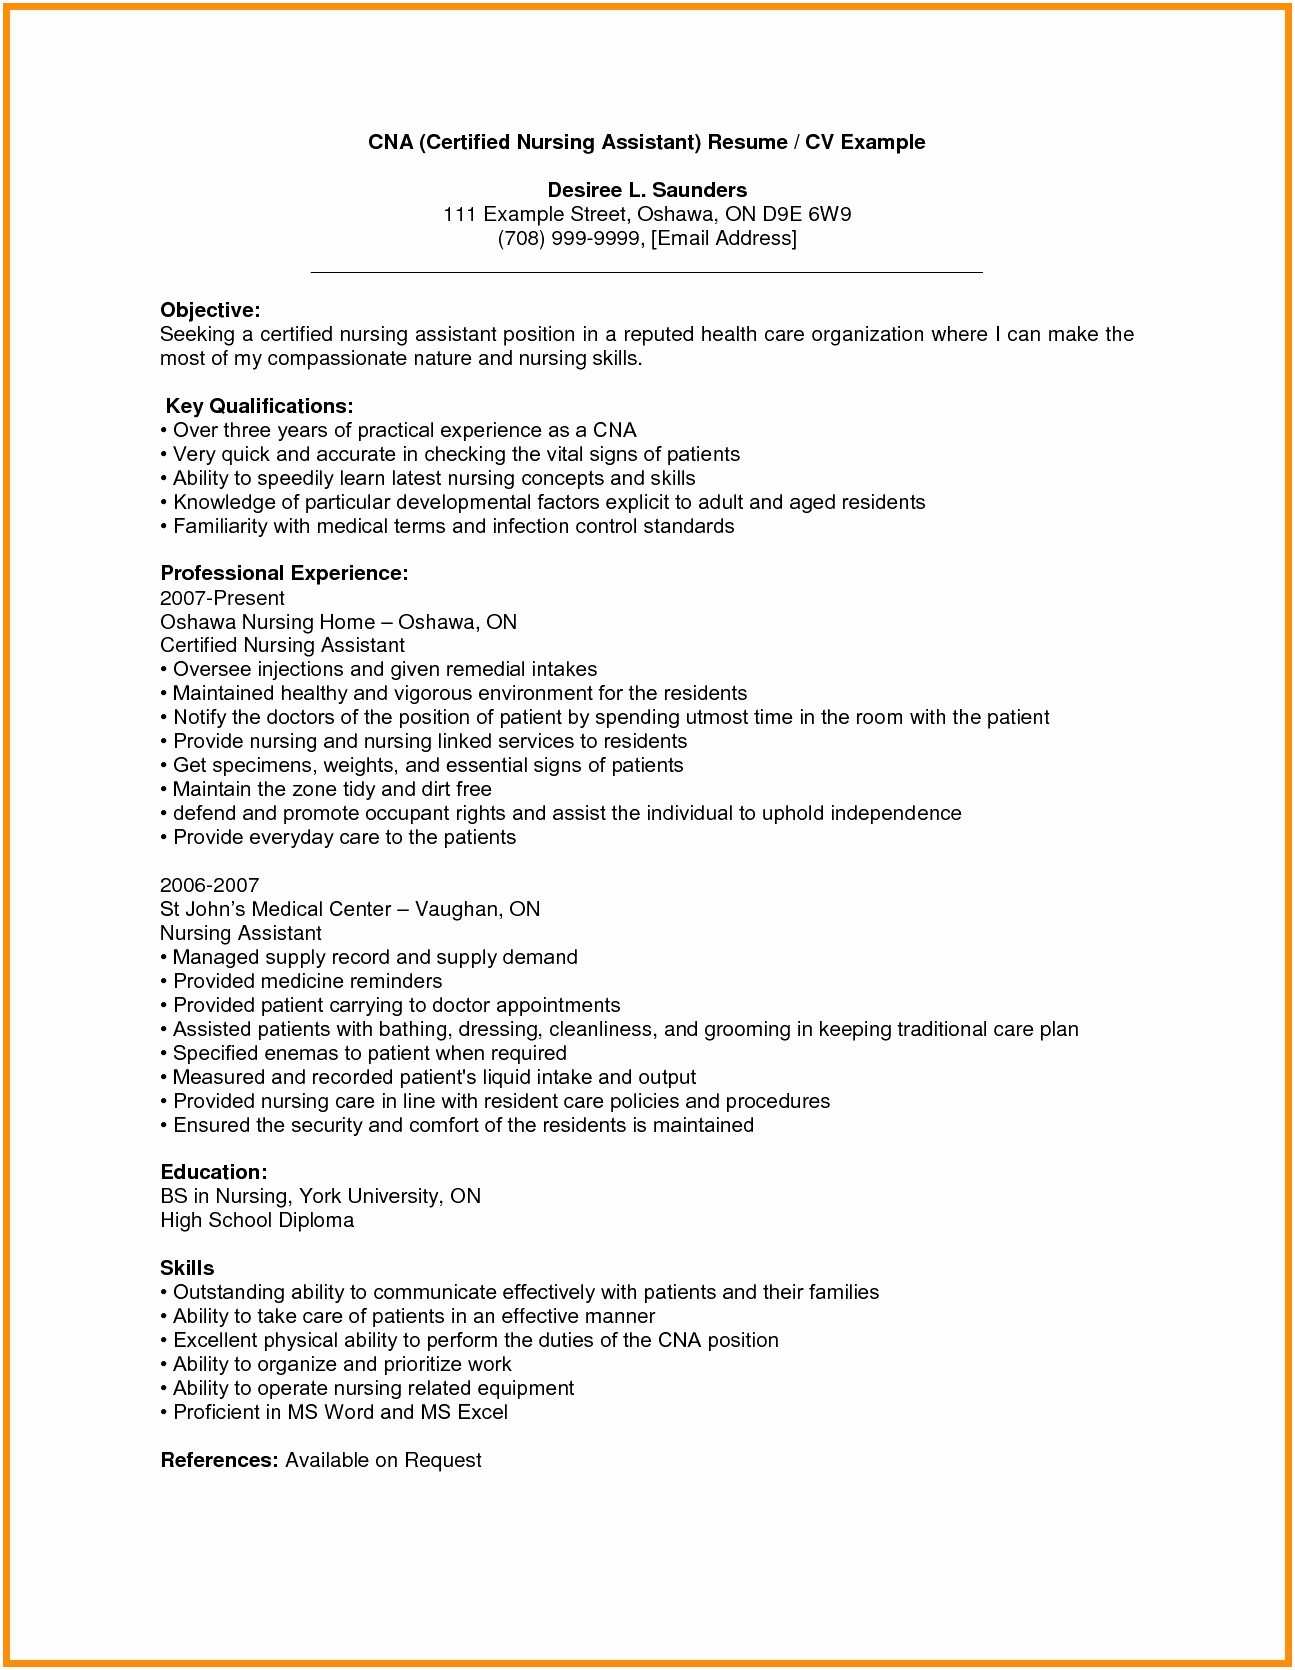 Cna Resume Objective - Resume Sample Objectives Patient Care assistant Resume Objective